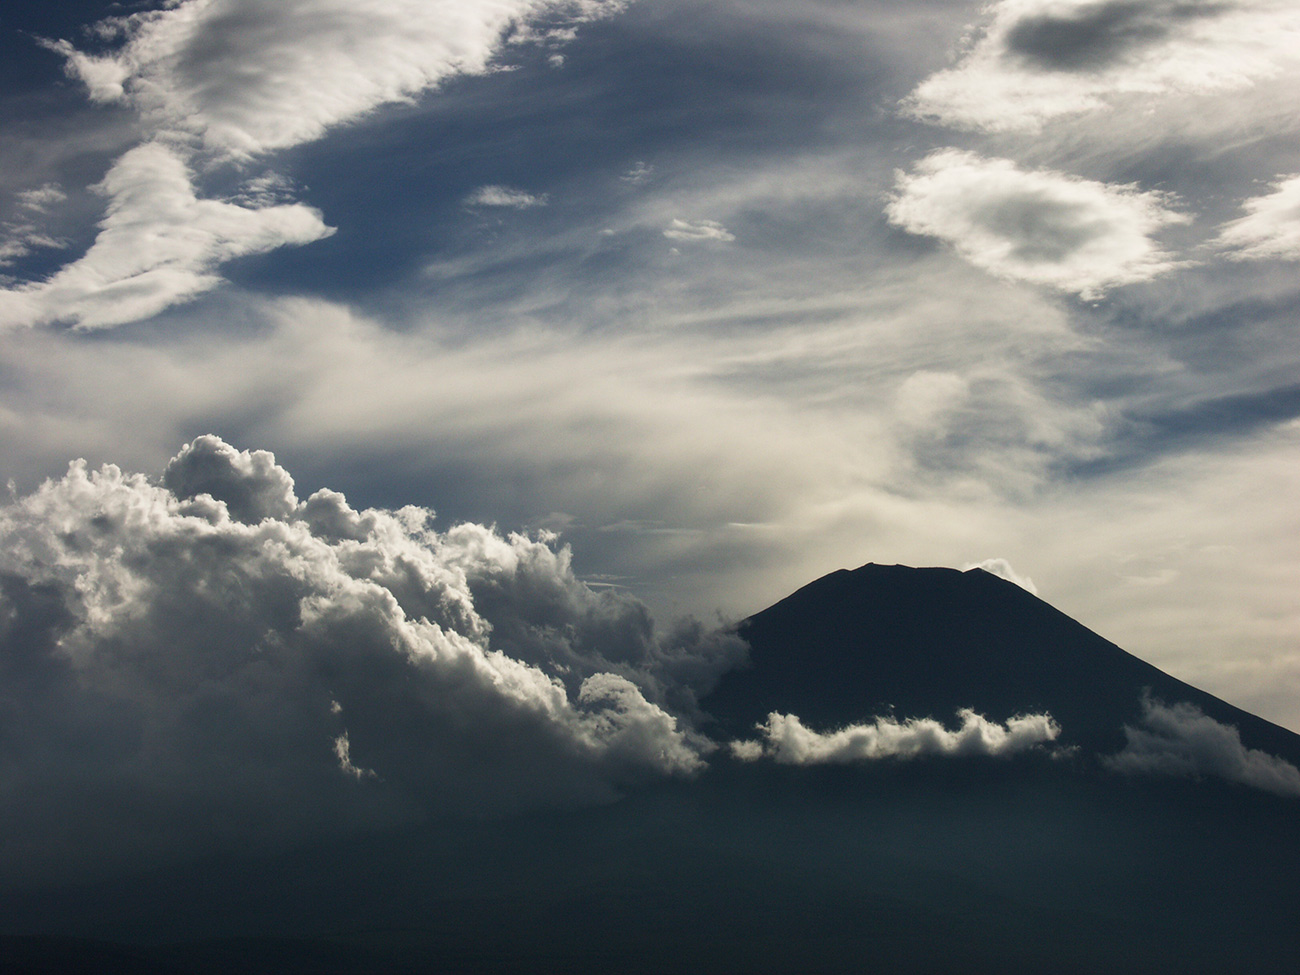 Color photo of Mount Fuji partially obscured by dramatic clouds